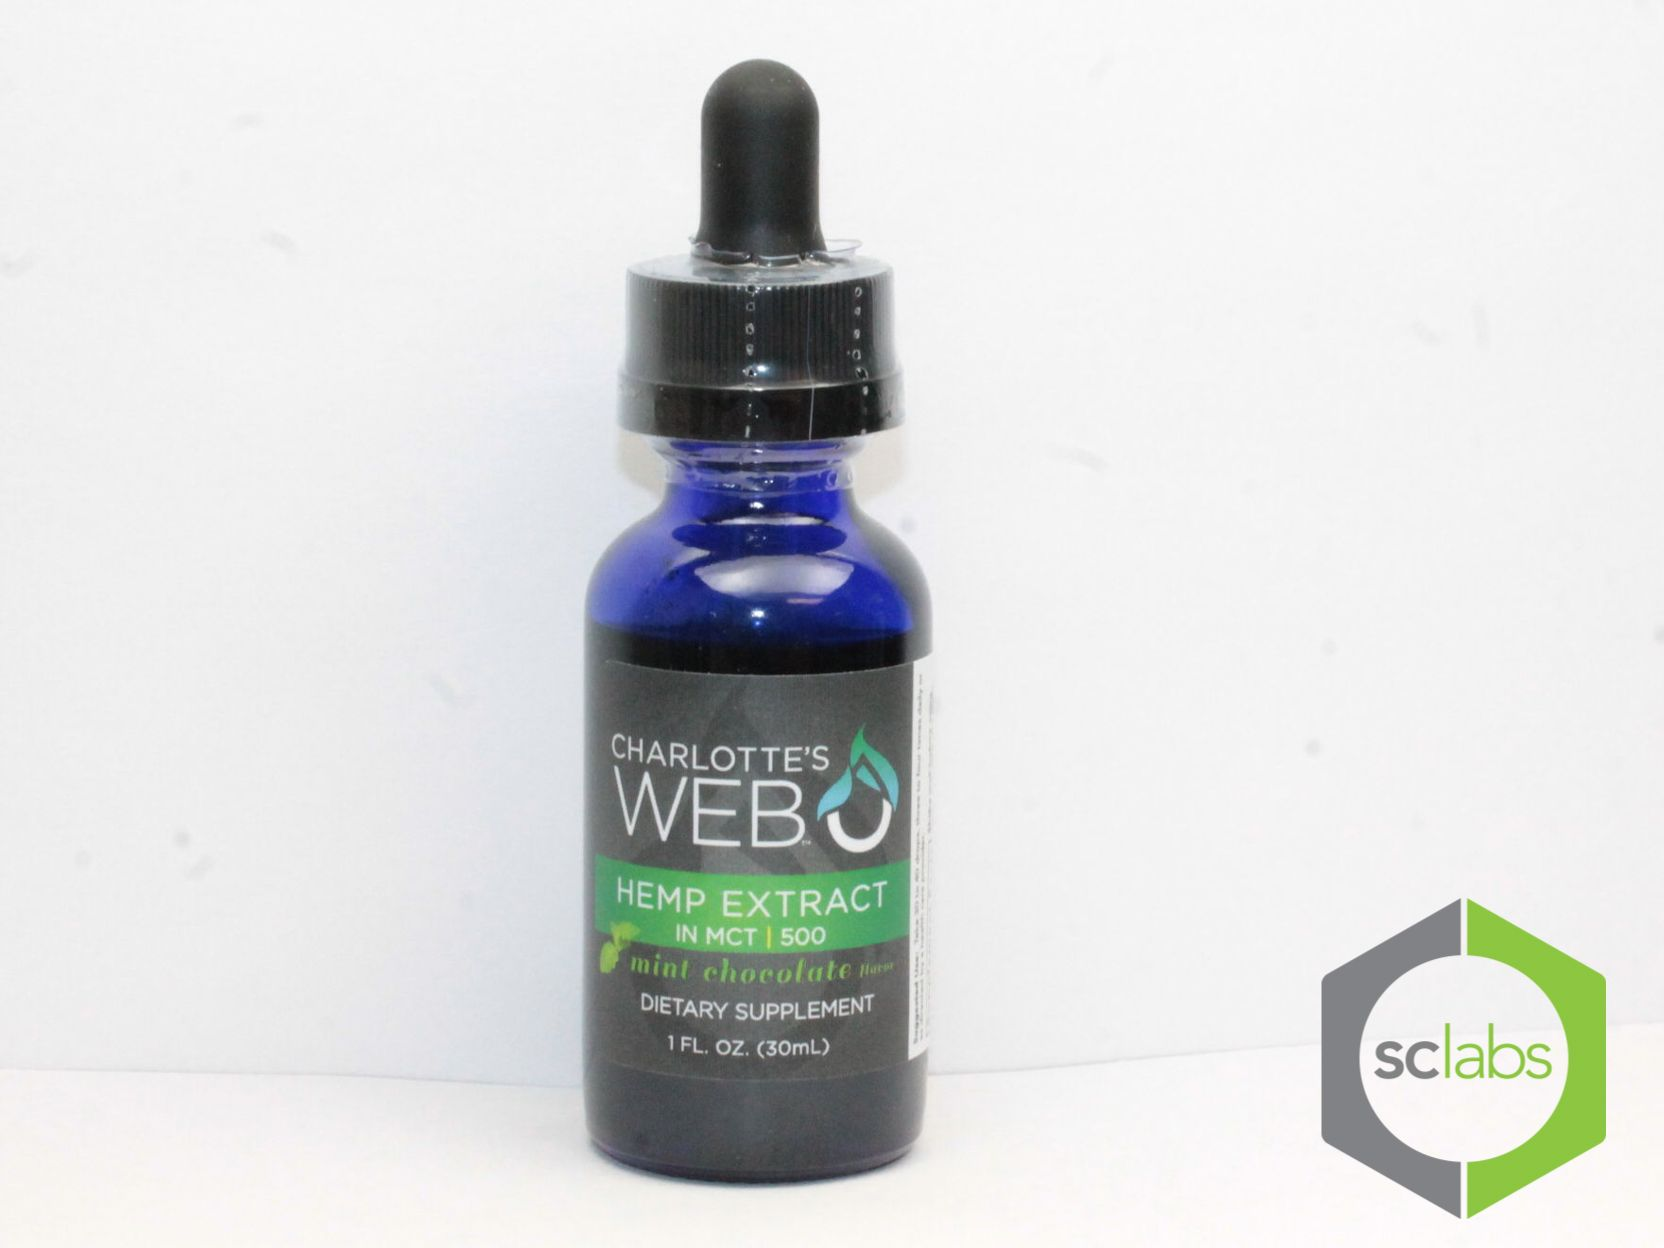 Charlotte's Web CBD Oil Review by I want my CBD | relaxation | Pinterest